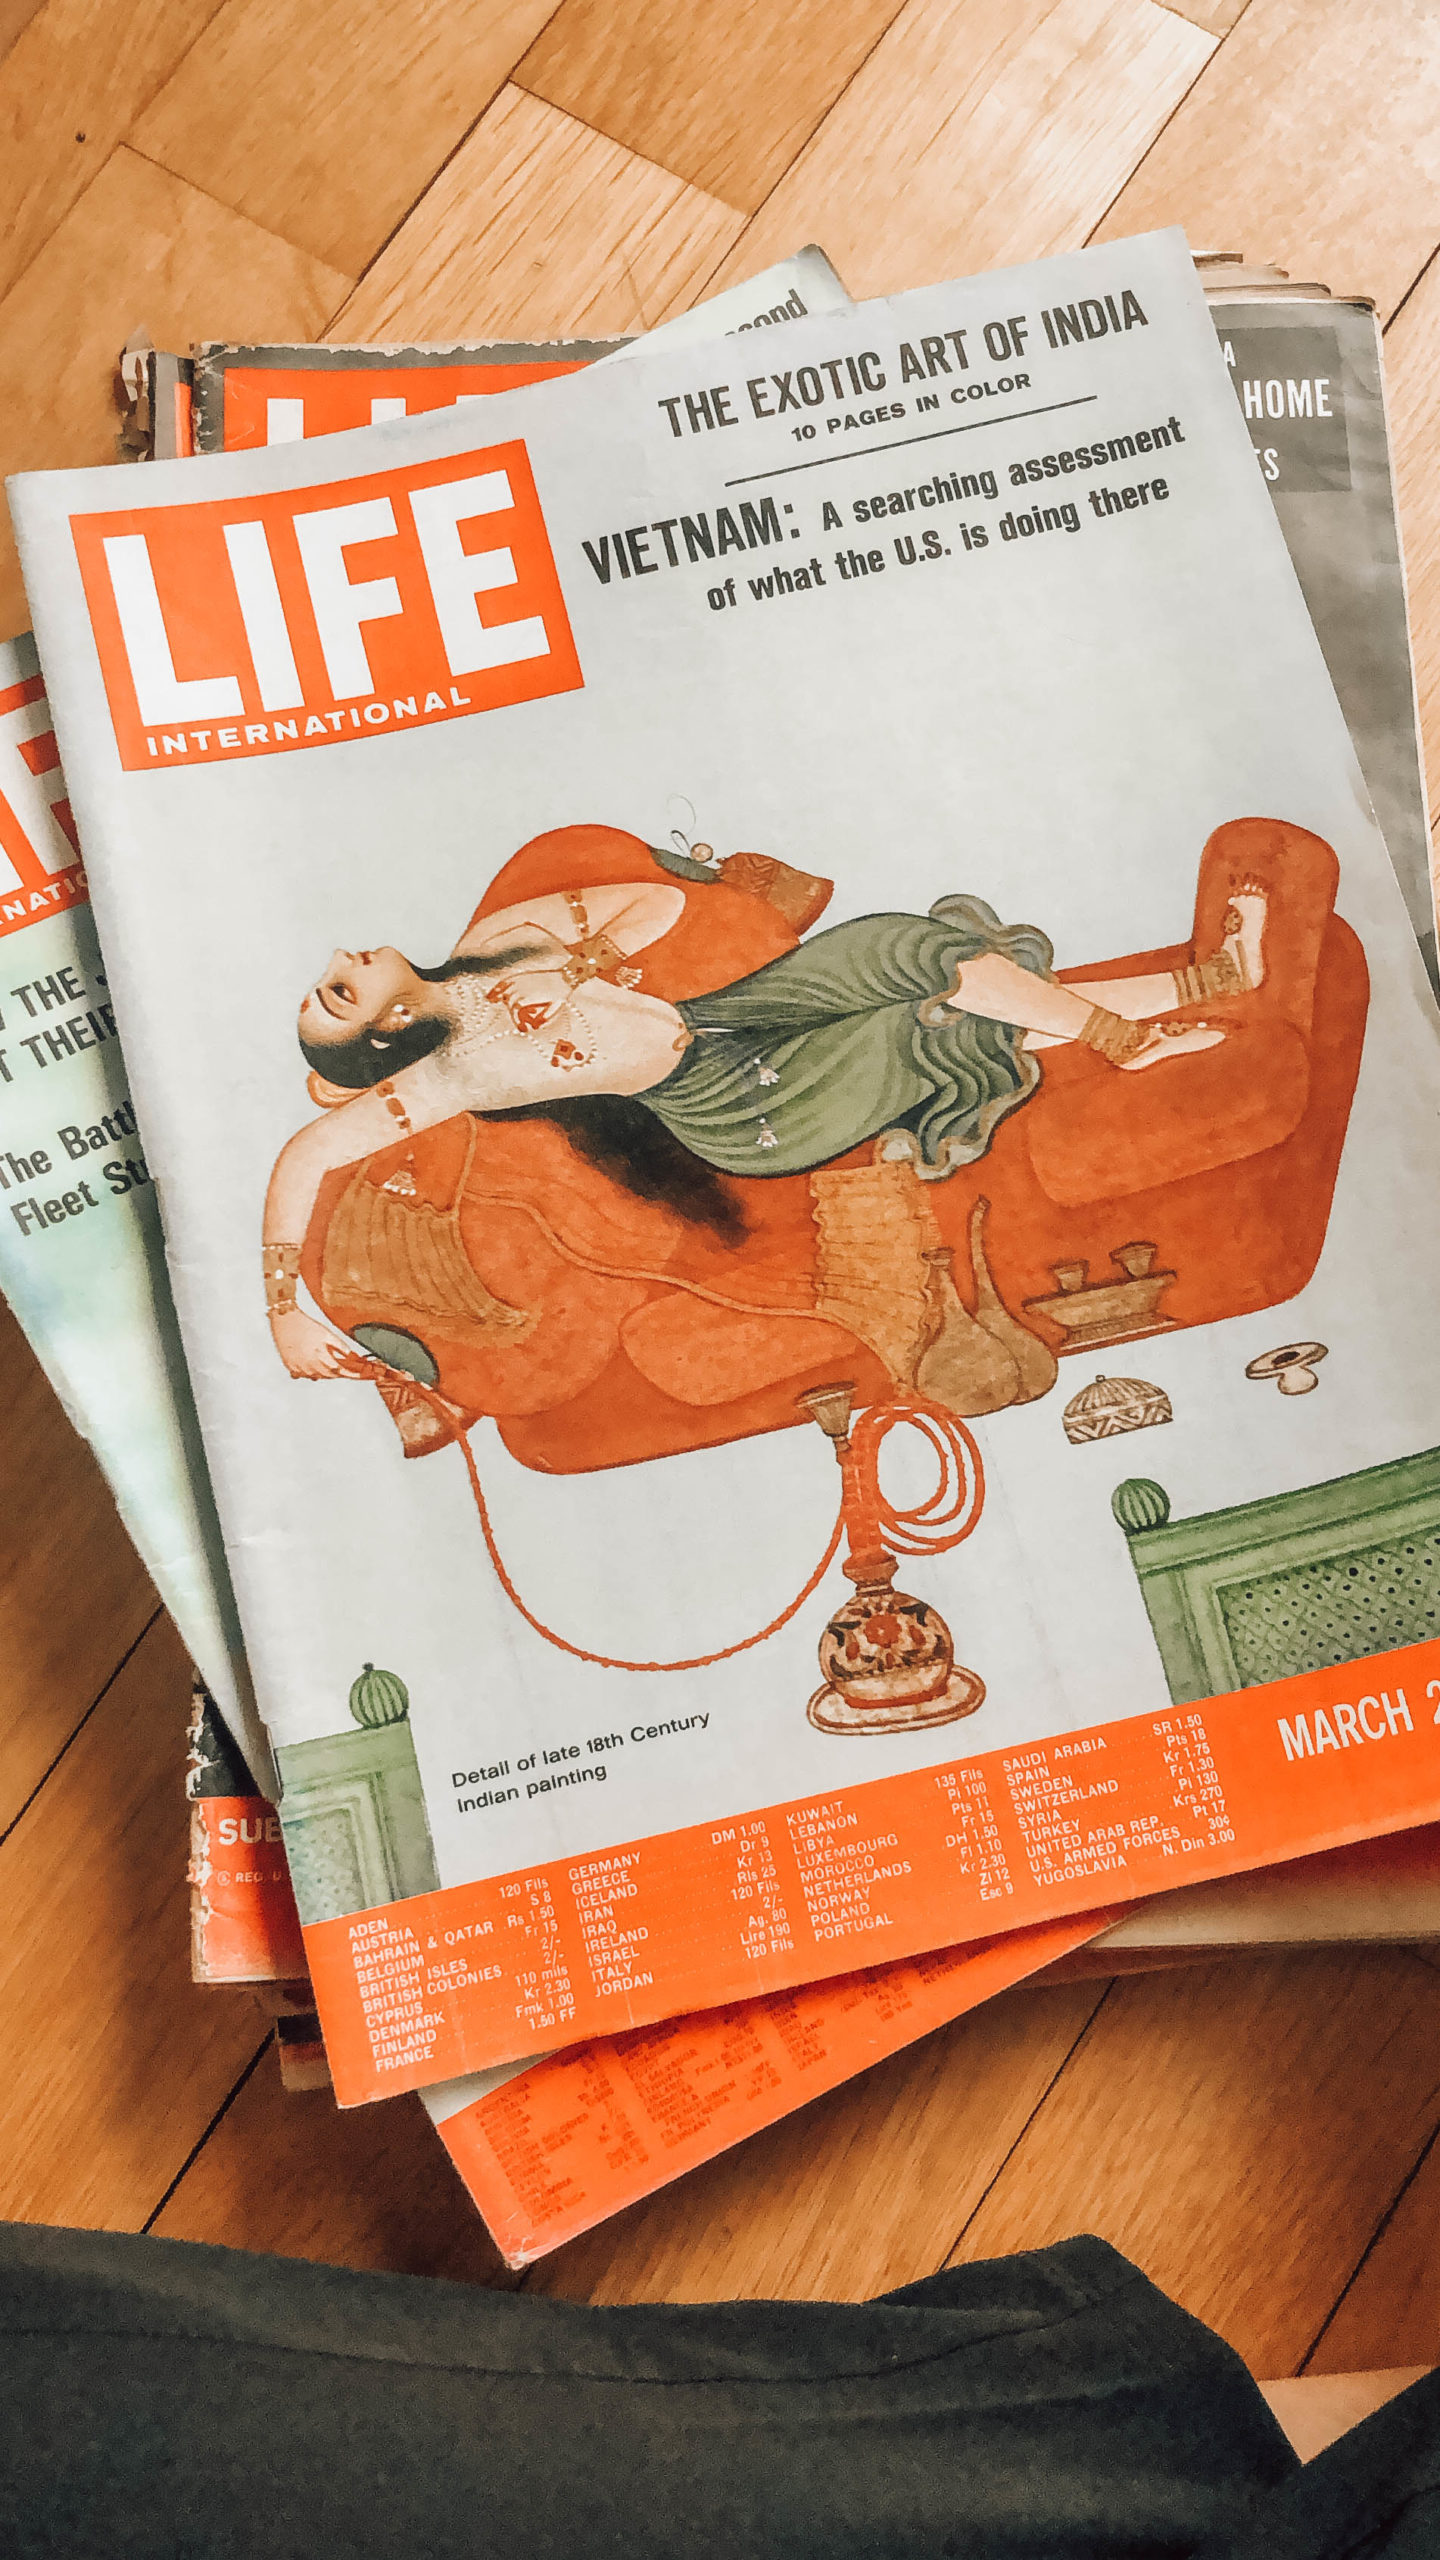 life magazine années 50 60 vieux magazines pensées libres monde virtuel tangible intangible madebyf made by f blog